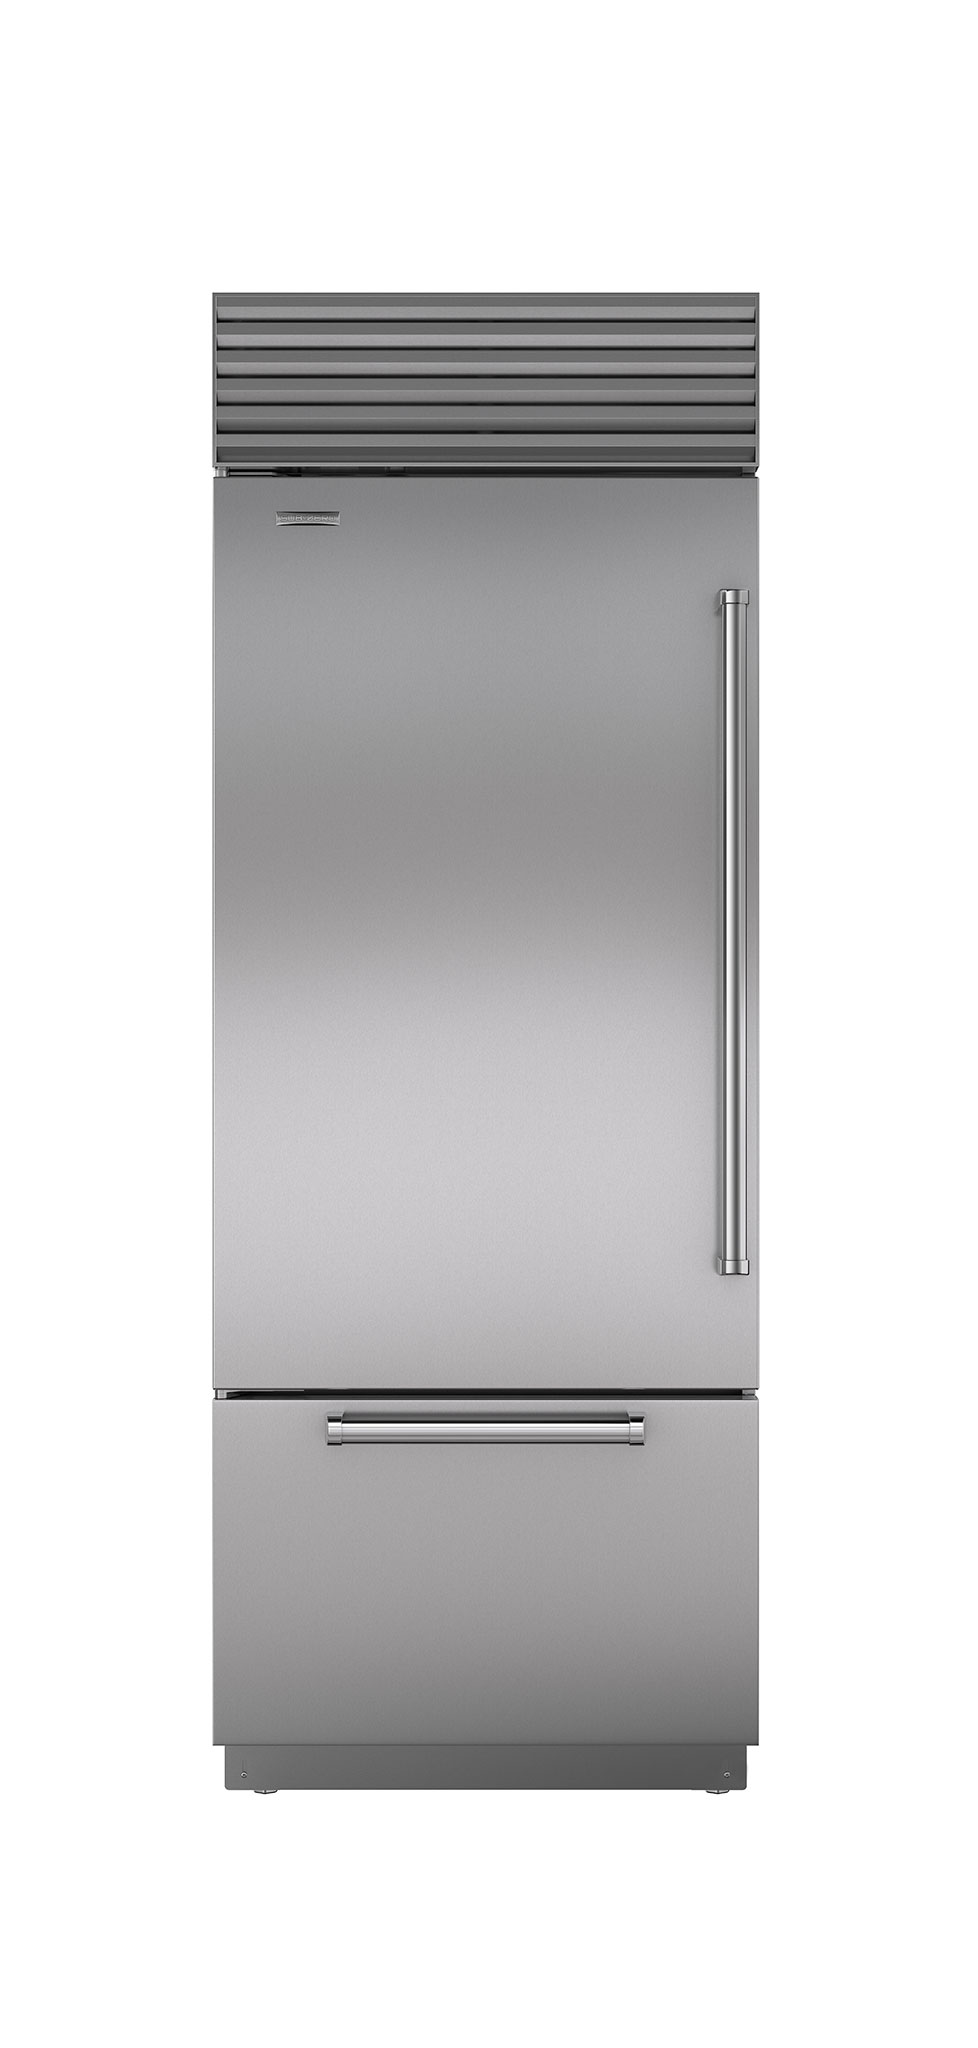 /sub-zero/full-size-refrigeration/builtin-refrigerators/30-inch-built-in-over-under-refrigerator-freezer